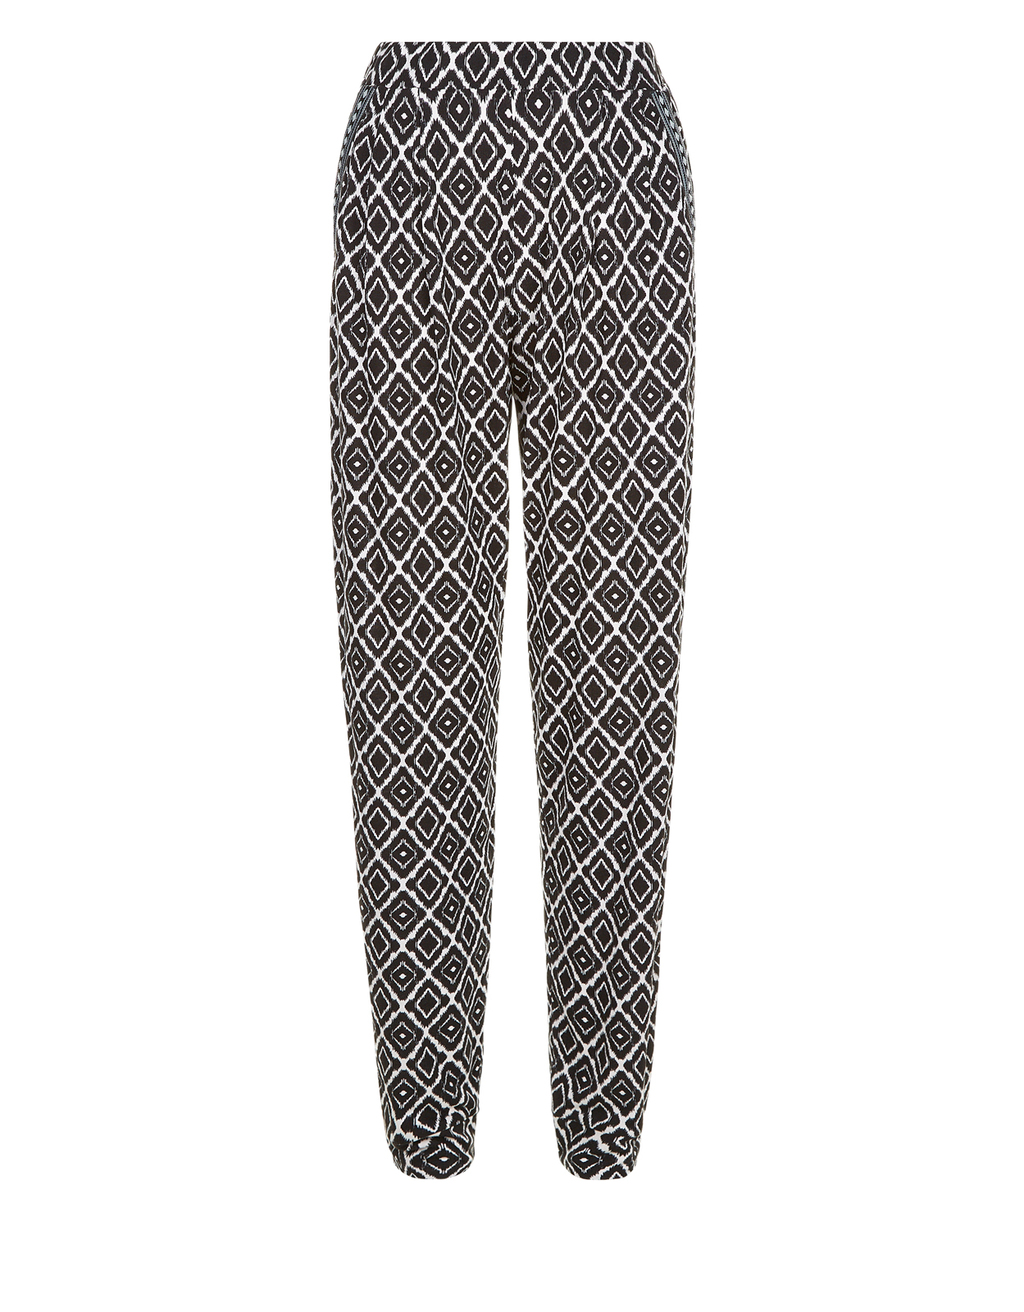 Annabelle Print Tapered Trouser - length: standard; style: harem/slouch; waist: mid/regular rise; secondary colour: white; predominant colour: black; occasions: casual; fibres: viscose/rayon - 100%; fit: tapered; pattern type: fabric; pattern: patterned/print; texture group: jersey - stretchy/drapey; multicoloured: multicoloured; season: s/s 2016; wardrobe: highlight